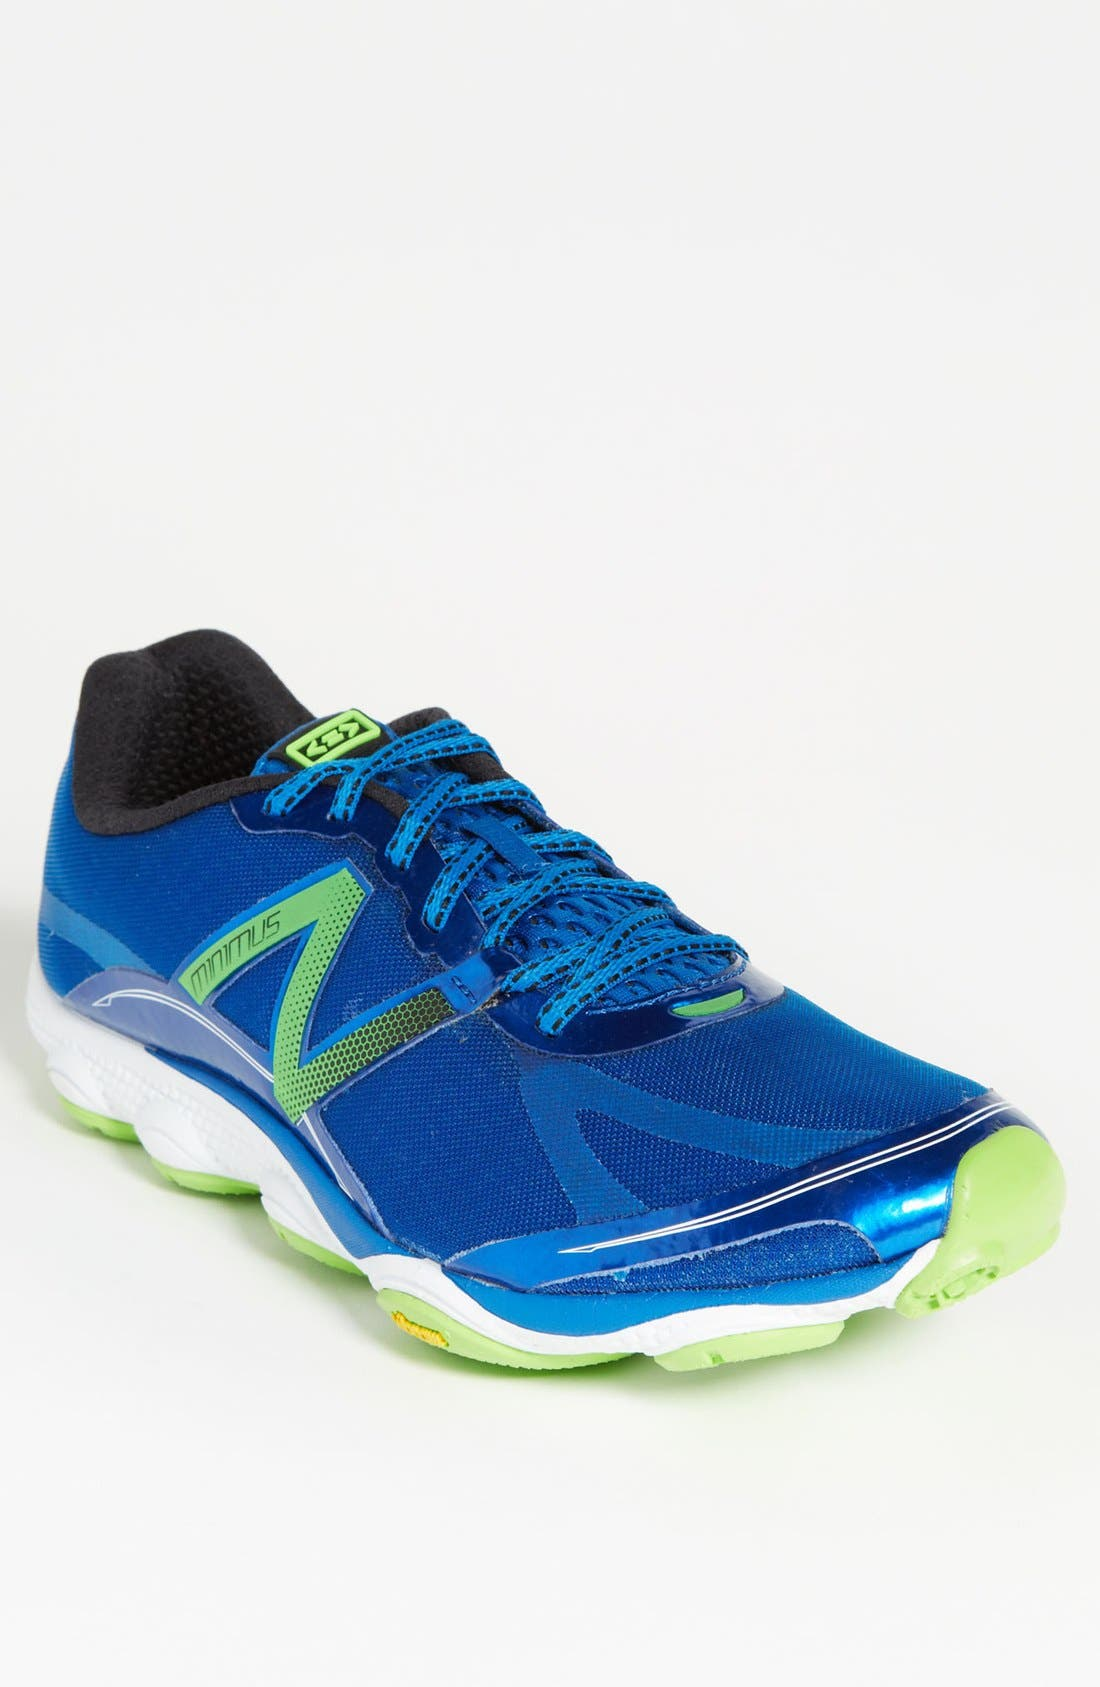 Alternate Image 1 Selected - New Balance '1010 Minimal' Trail Running Shoe (Men)